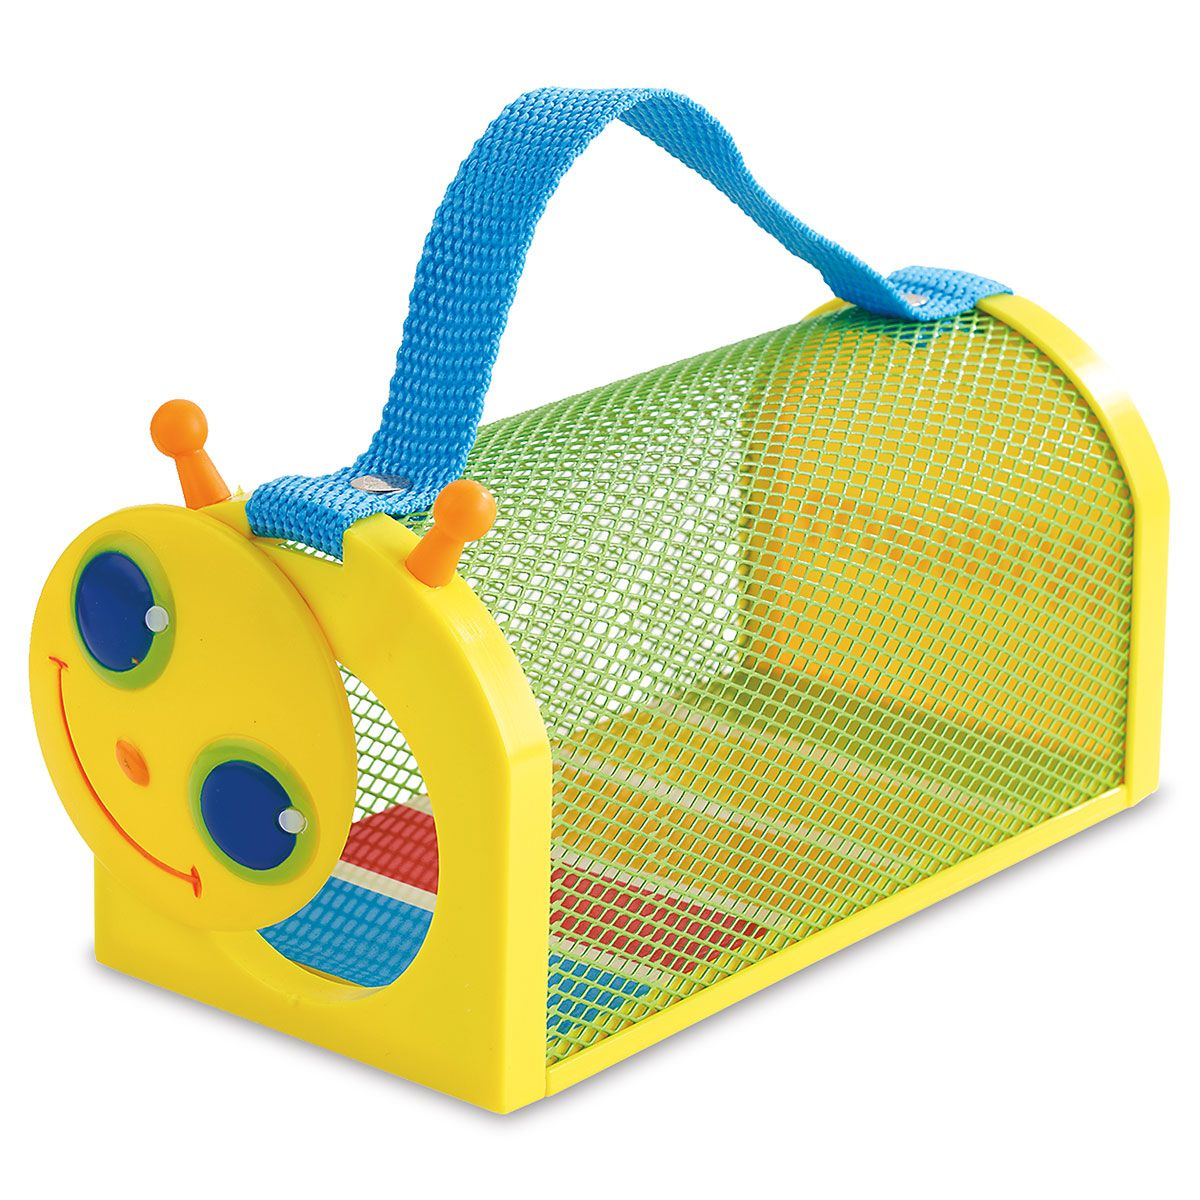 Personalized Giddy Buggy Bug House by Melissa & Doug®